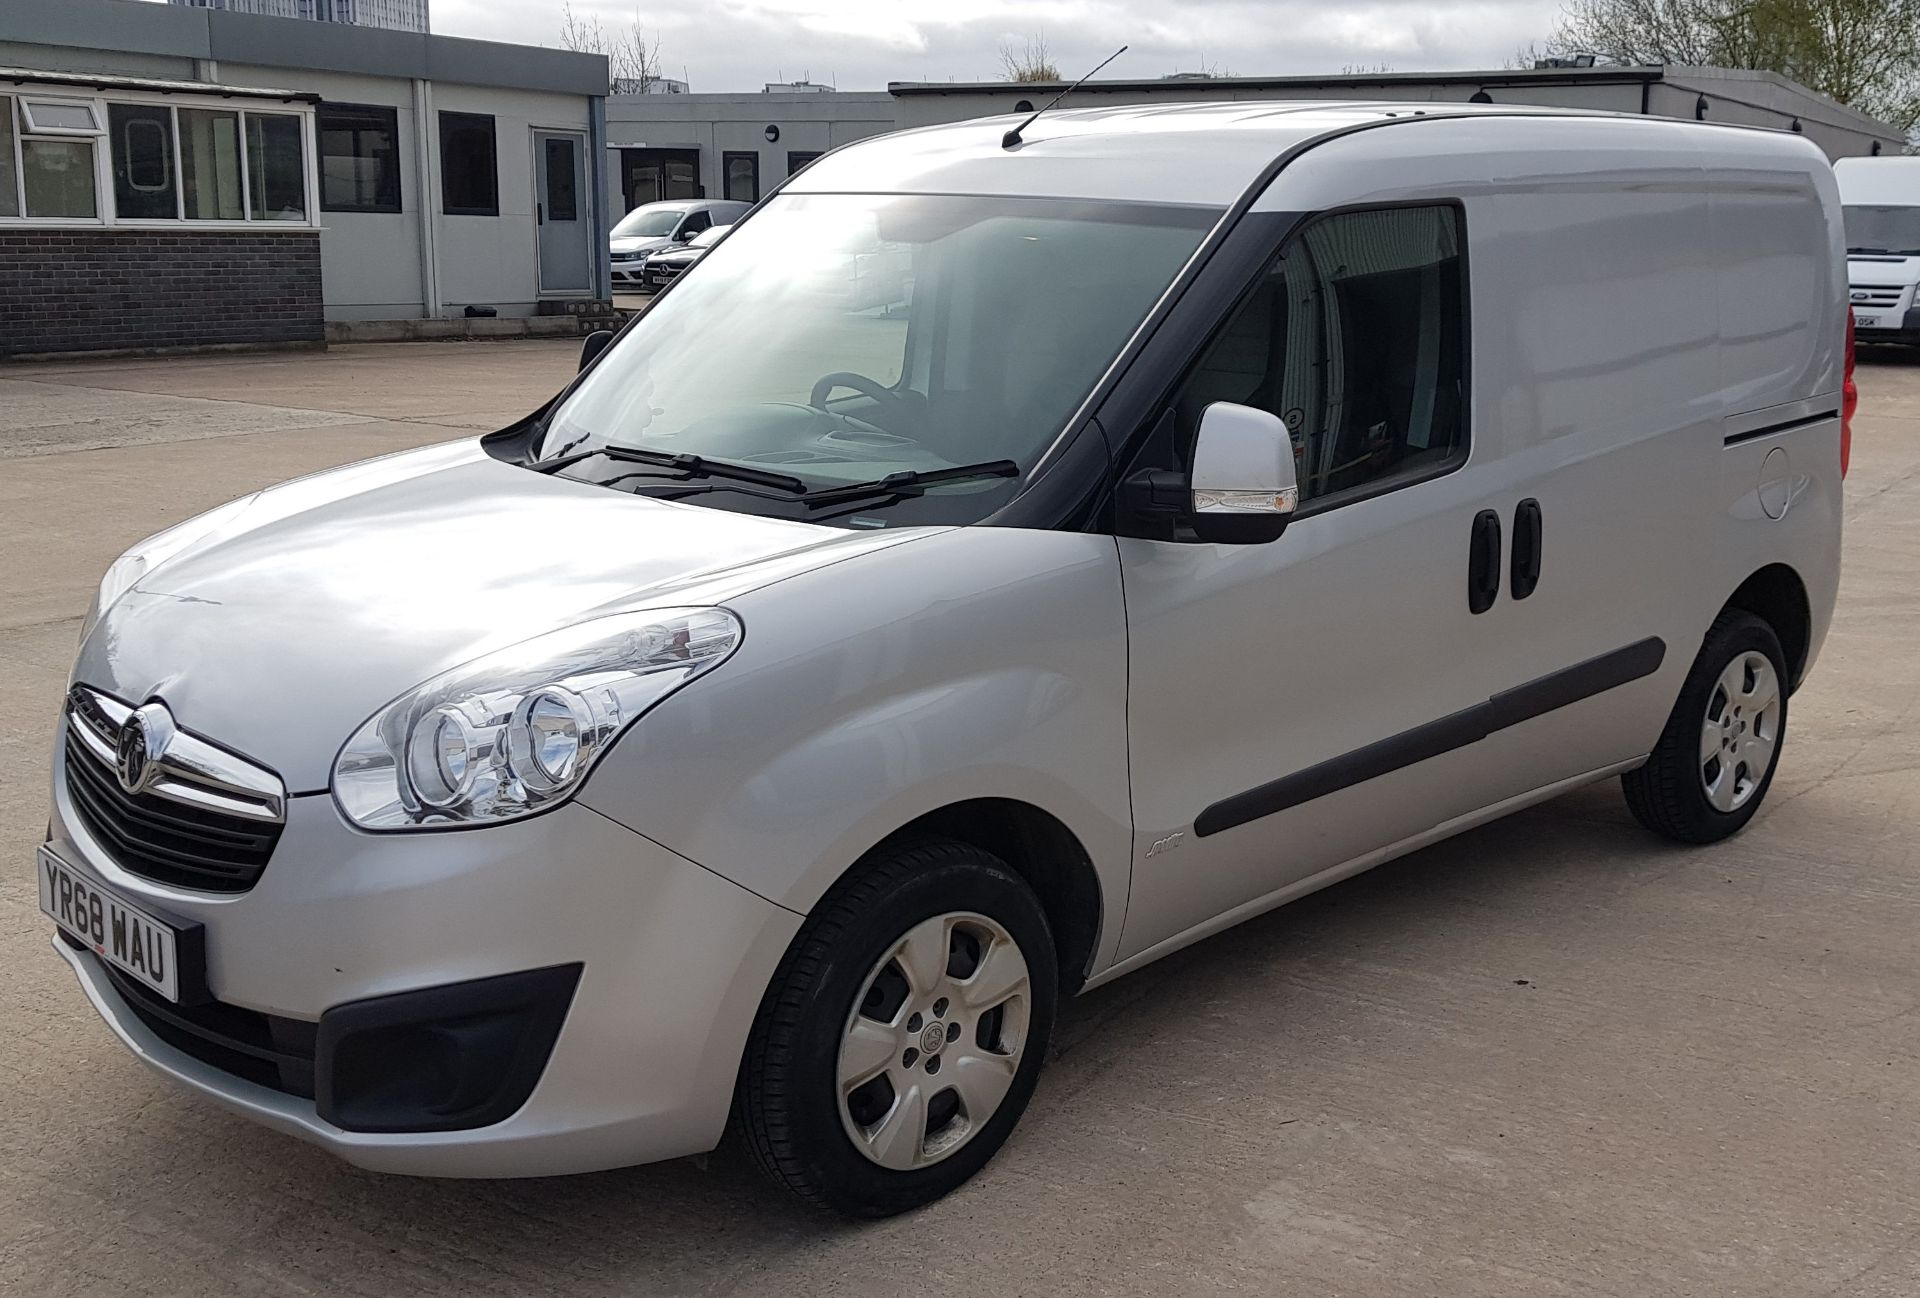 SILVER VAUXHALL COMBO 2000 SPORTIVE CDTI. ( DIESEL ) Reg : YR68 WAU Mileage : 39451 Details: WITH - Image 2 of 7